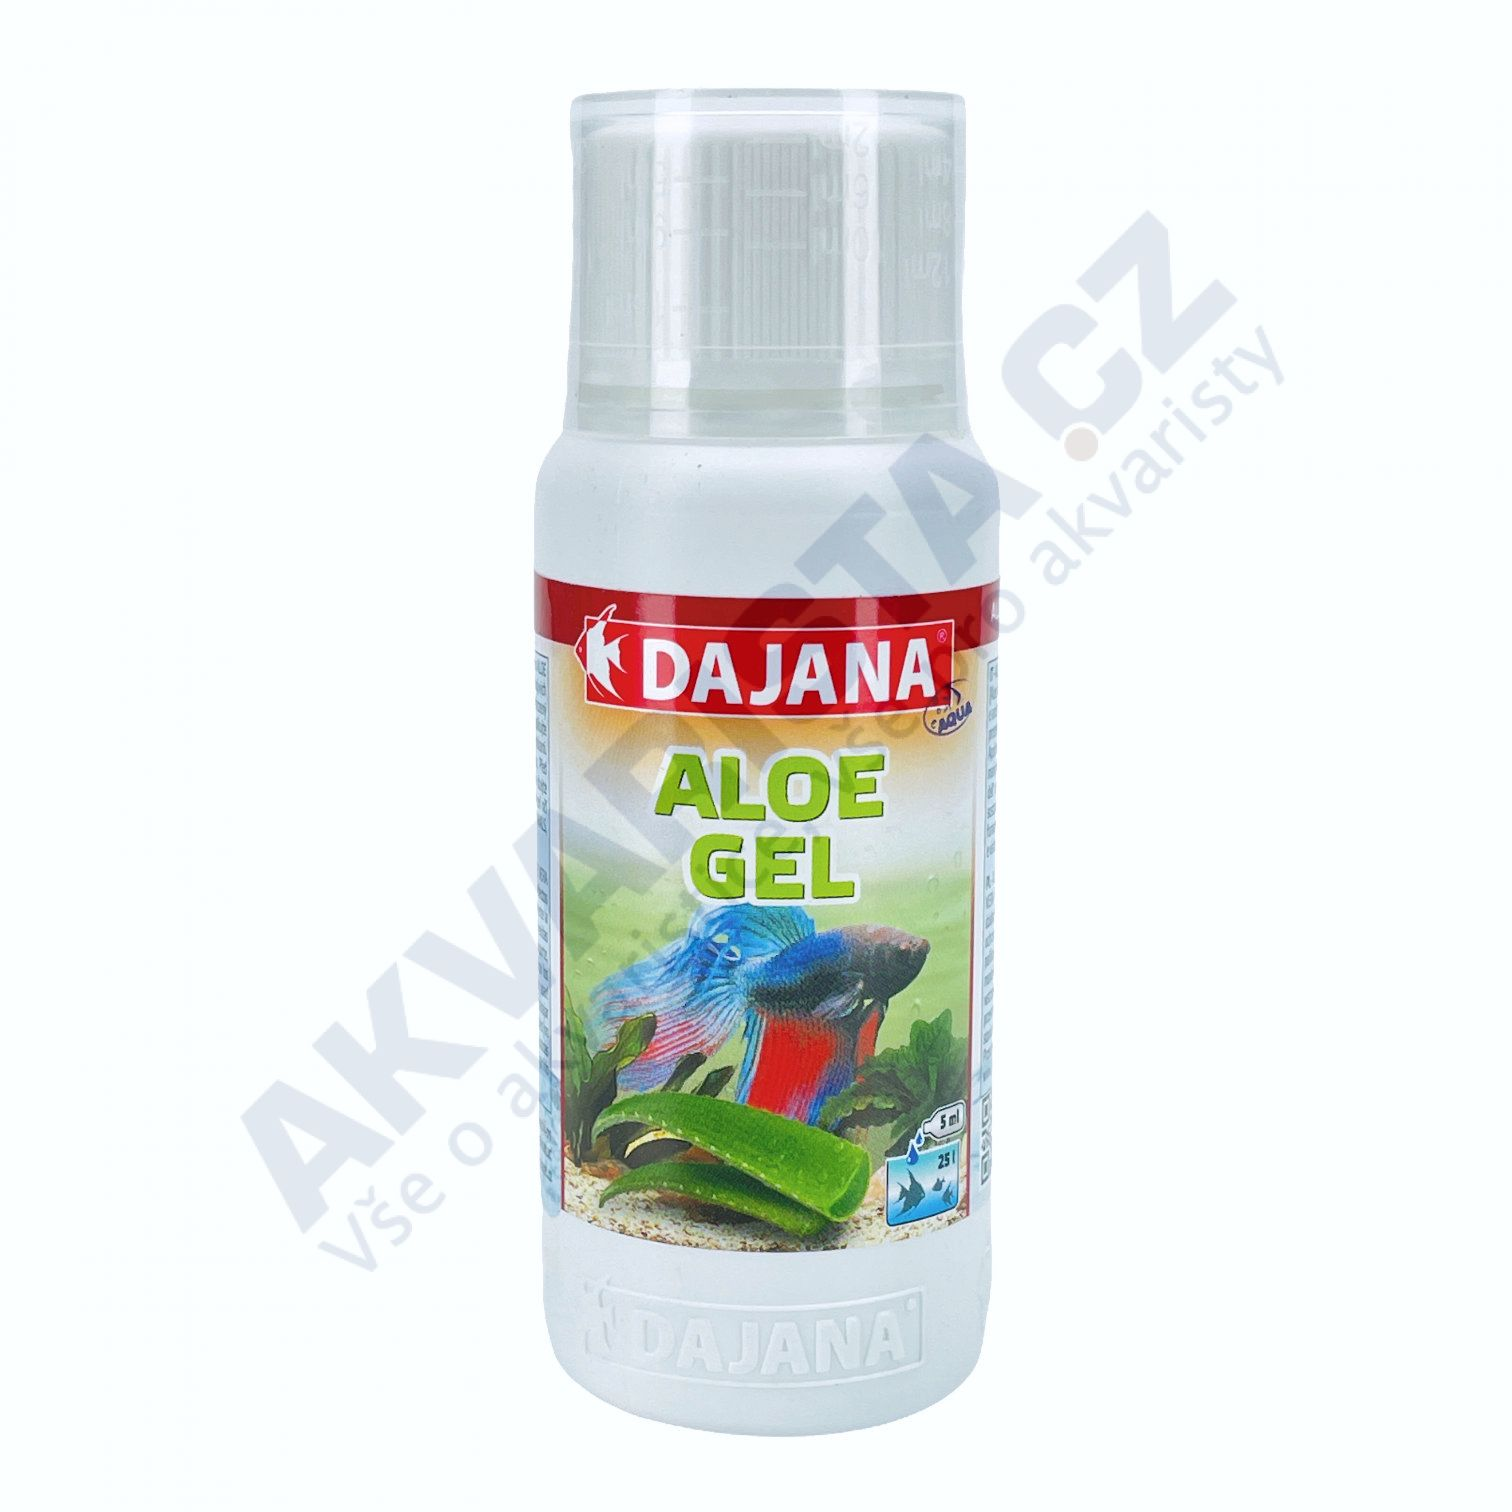 Dajana ALOE gel 1000ml